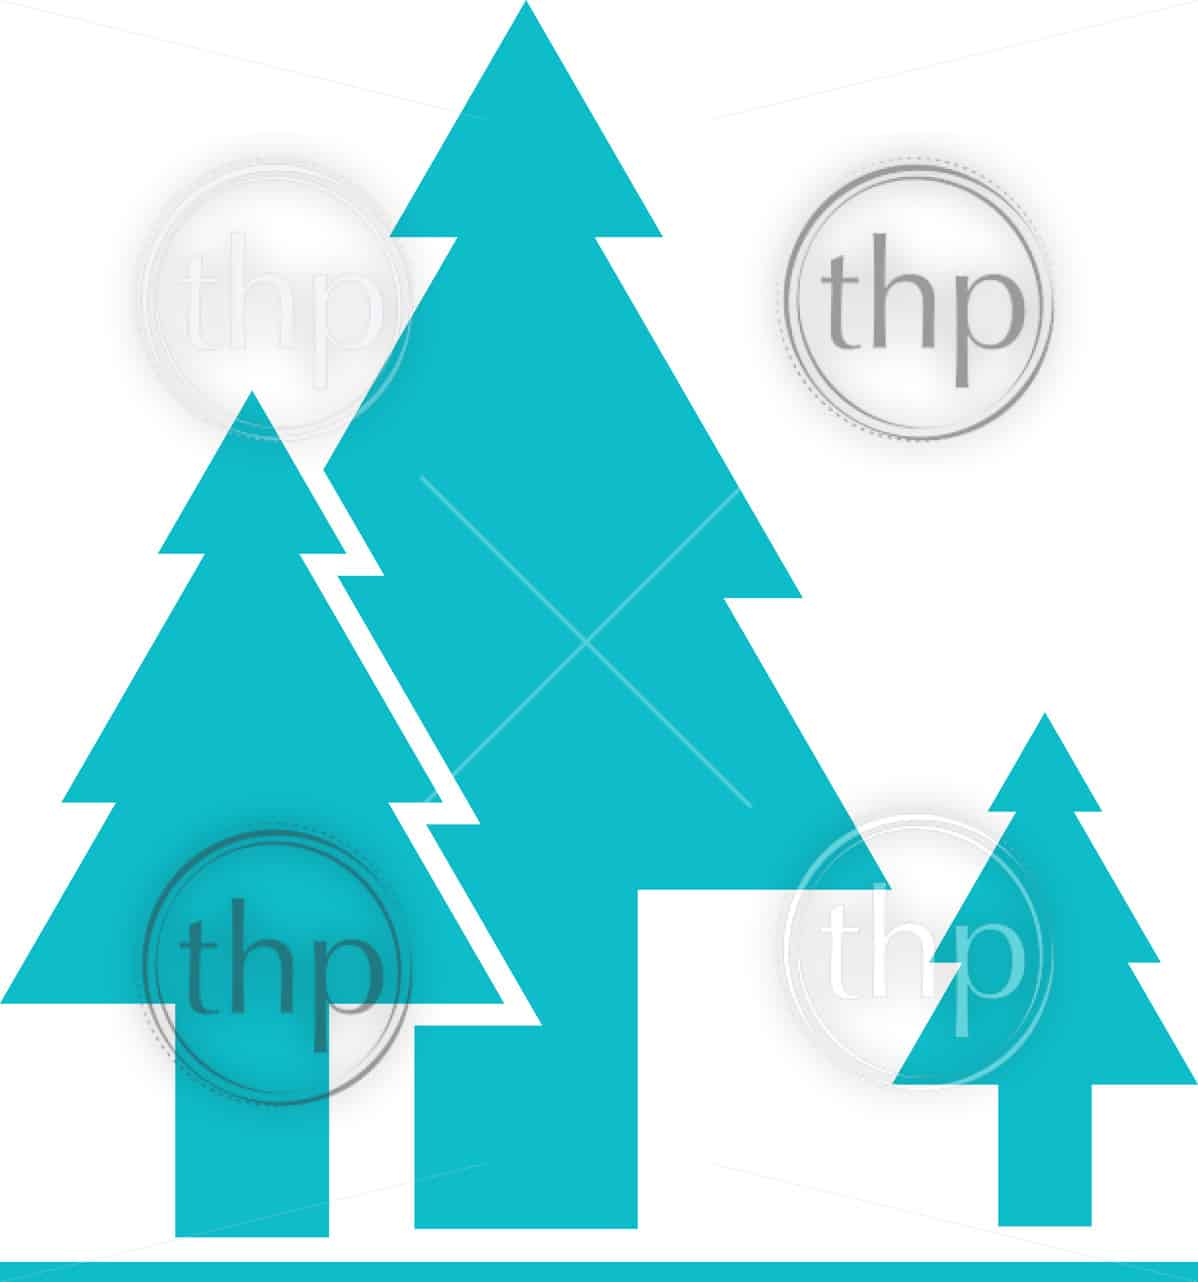 Tree or forest icon in simple flat vector design